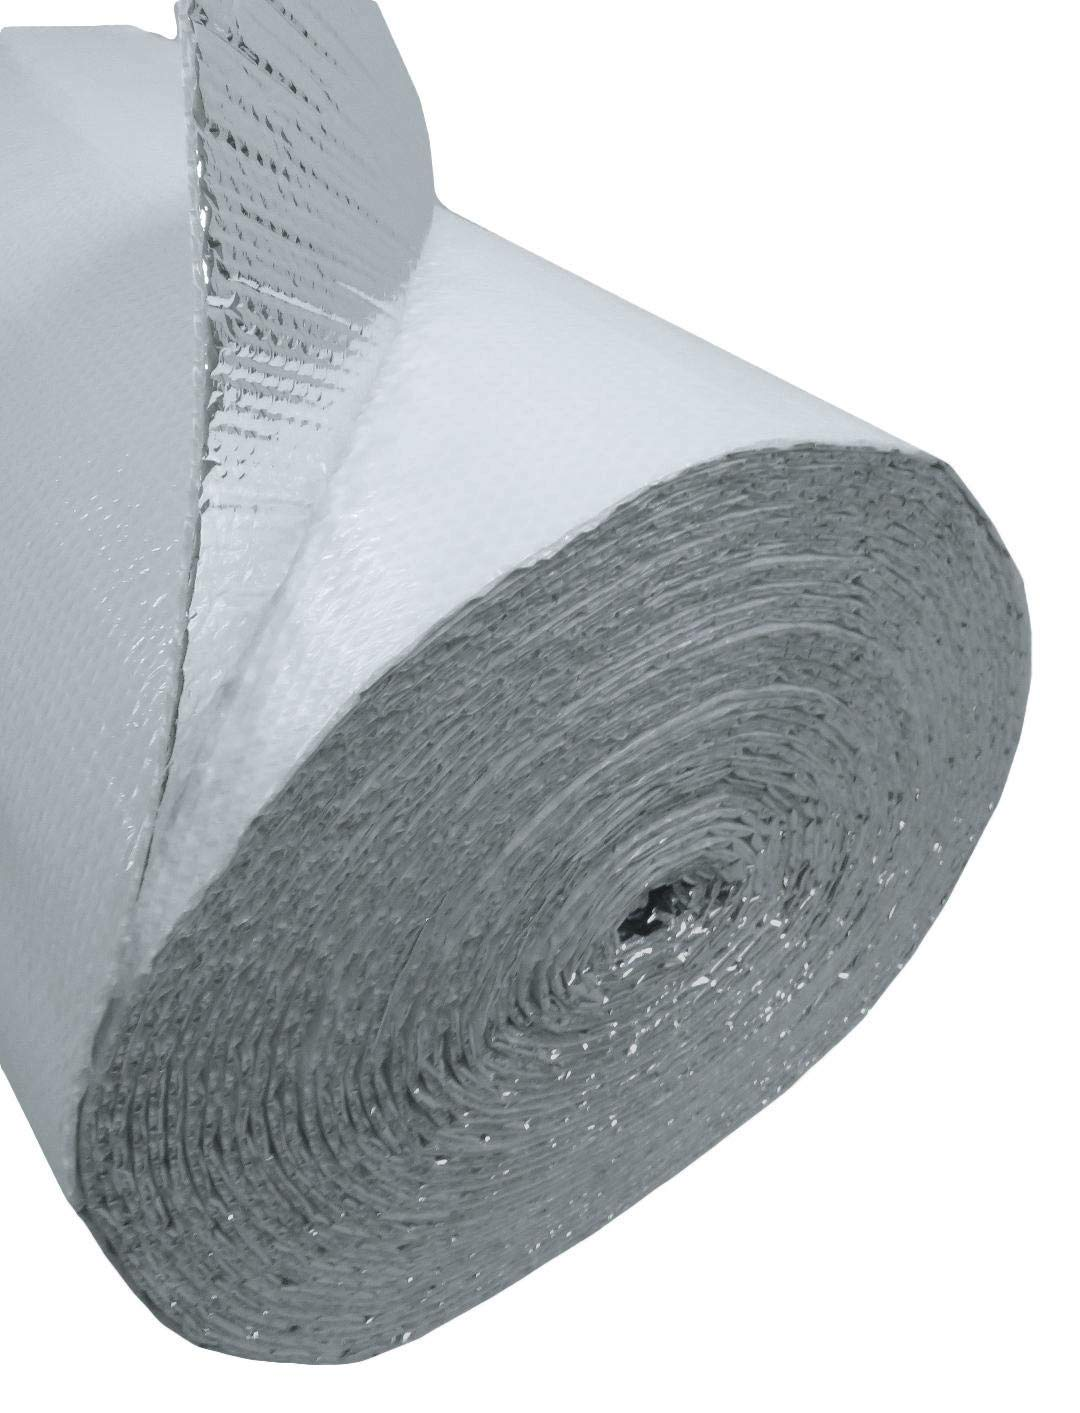 US Energy Products (4ft x 100ft) NASATECH White DOUBLE Bubble Aluminum Reflective Aluminum Insulation Roll Solid Metal Building Vapor Barrier - White Concrete Commercial Residential House Buildings by US Energy Products (Image #2)